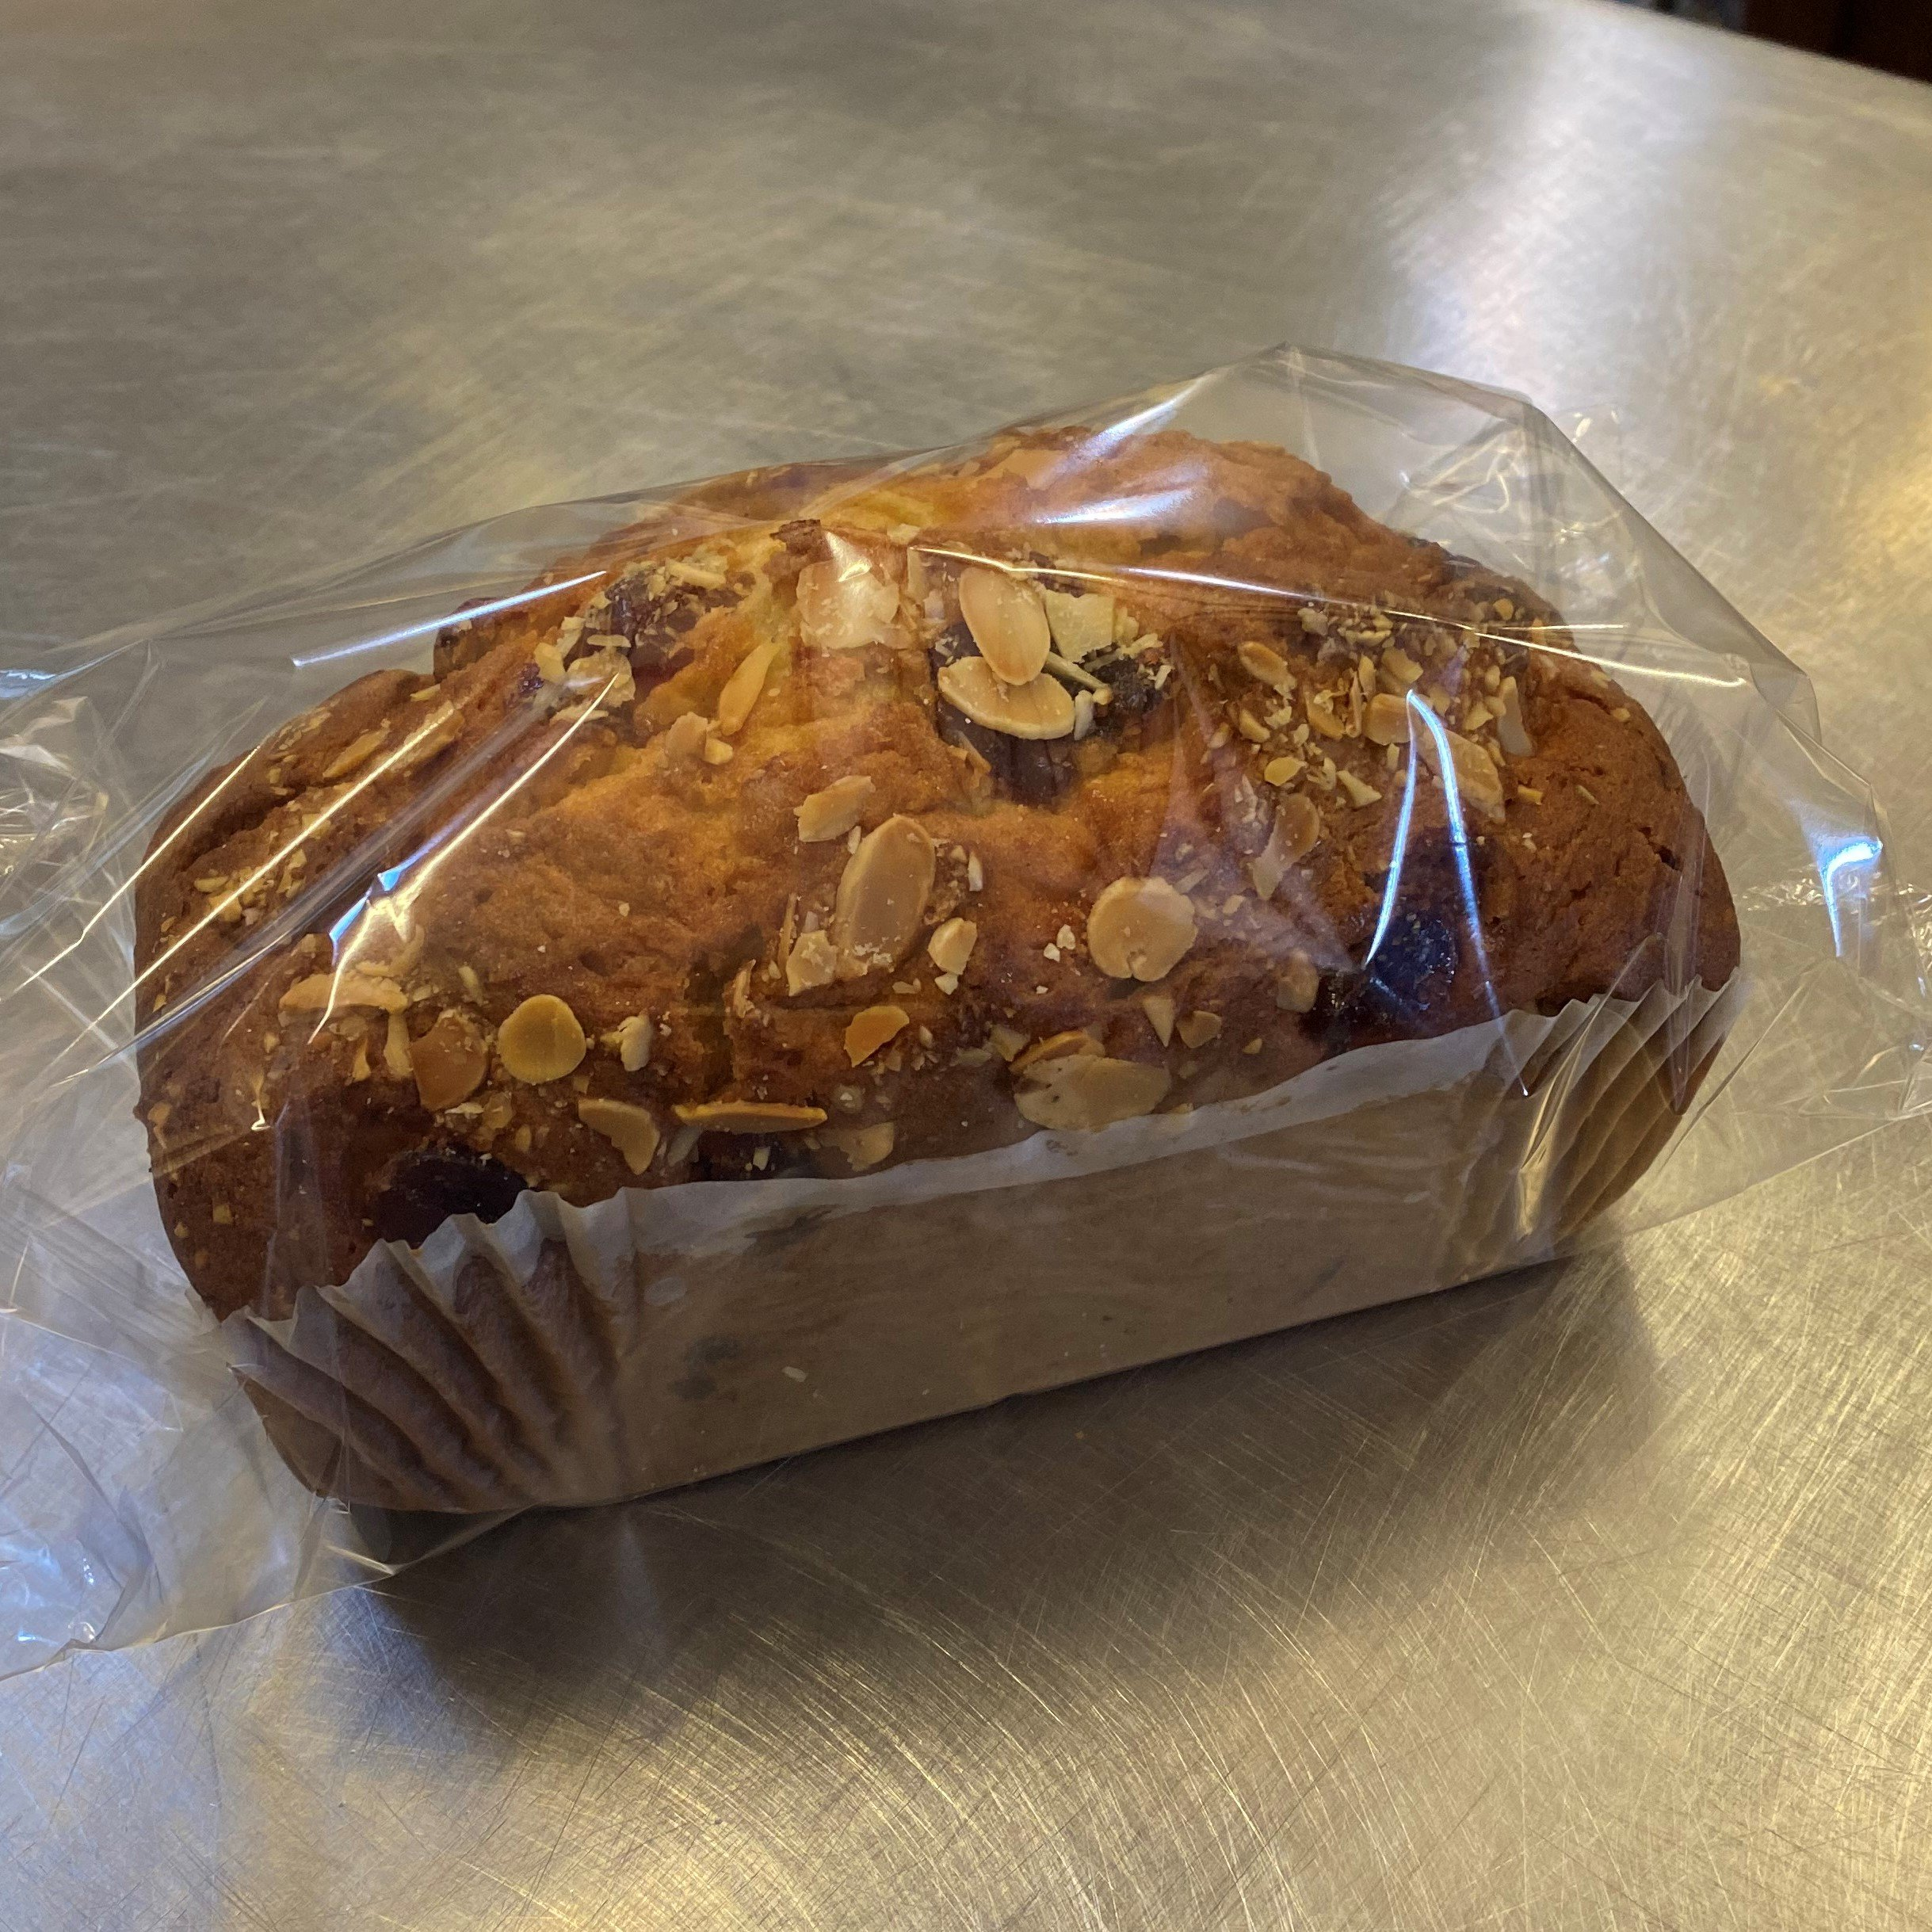 Cherry and almond loaf - £3.30